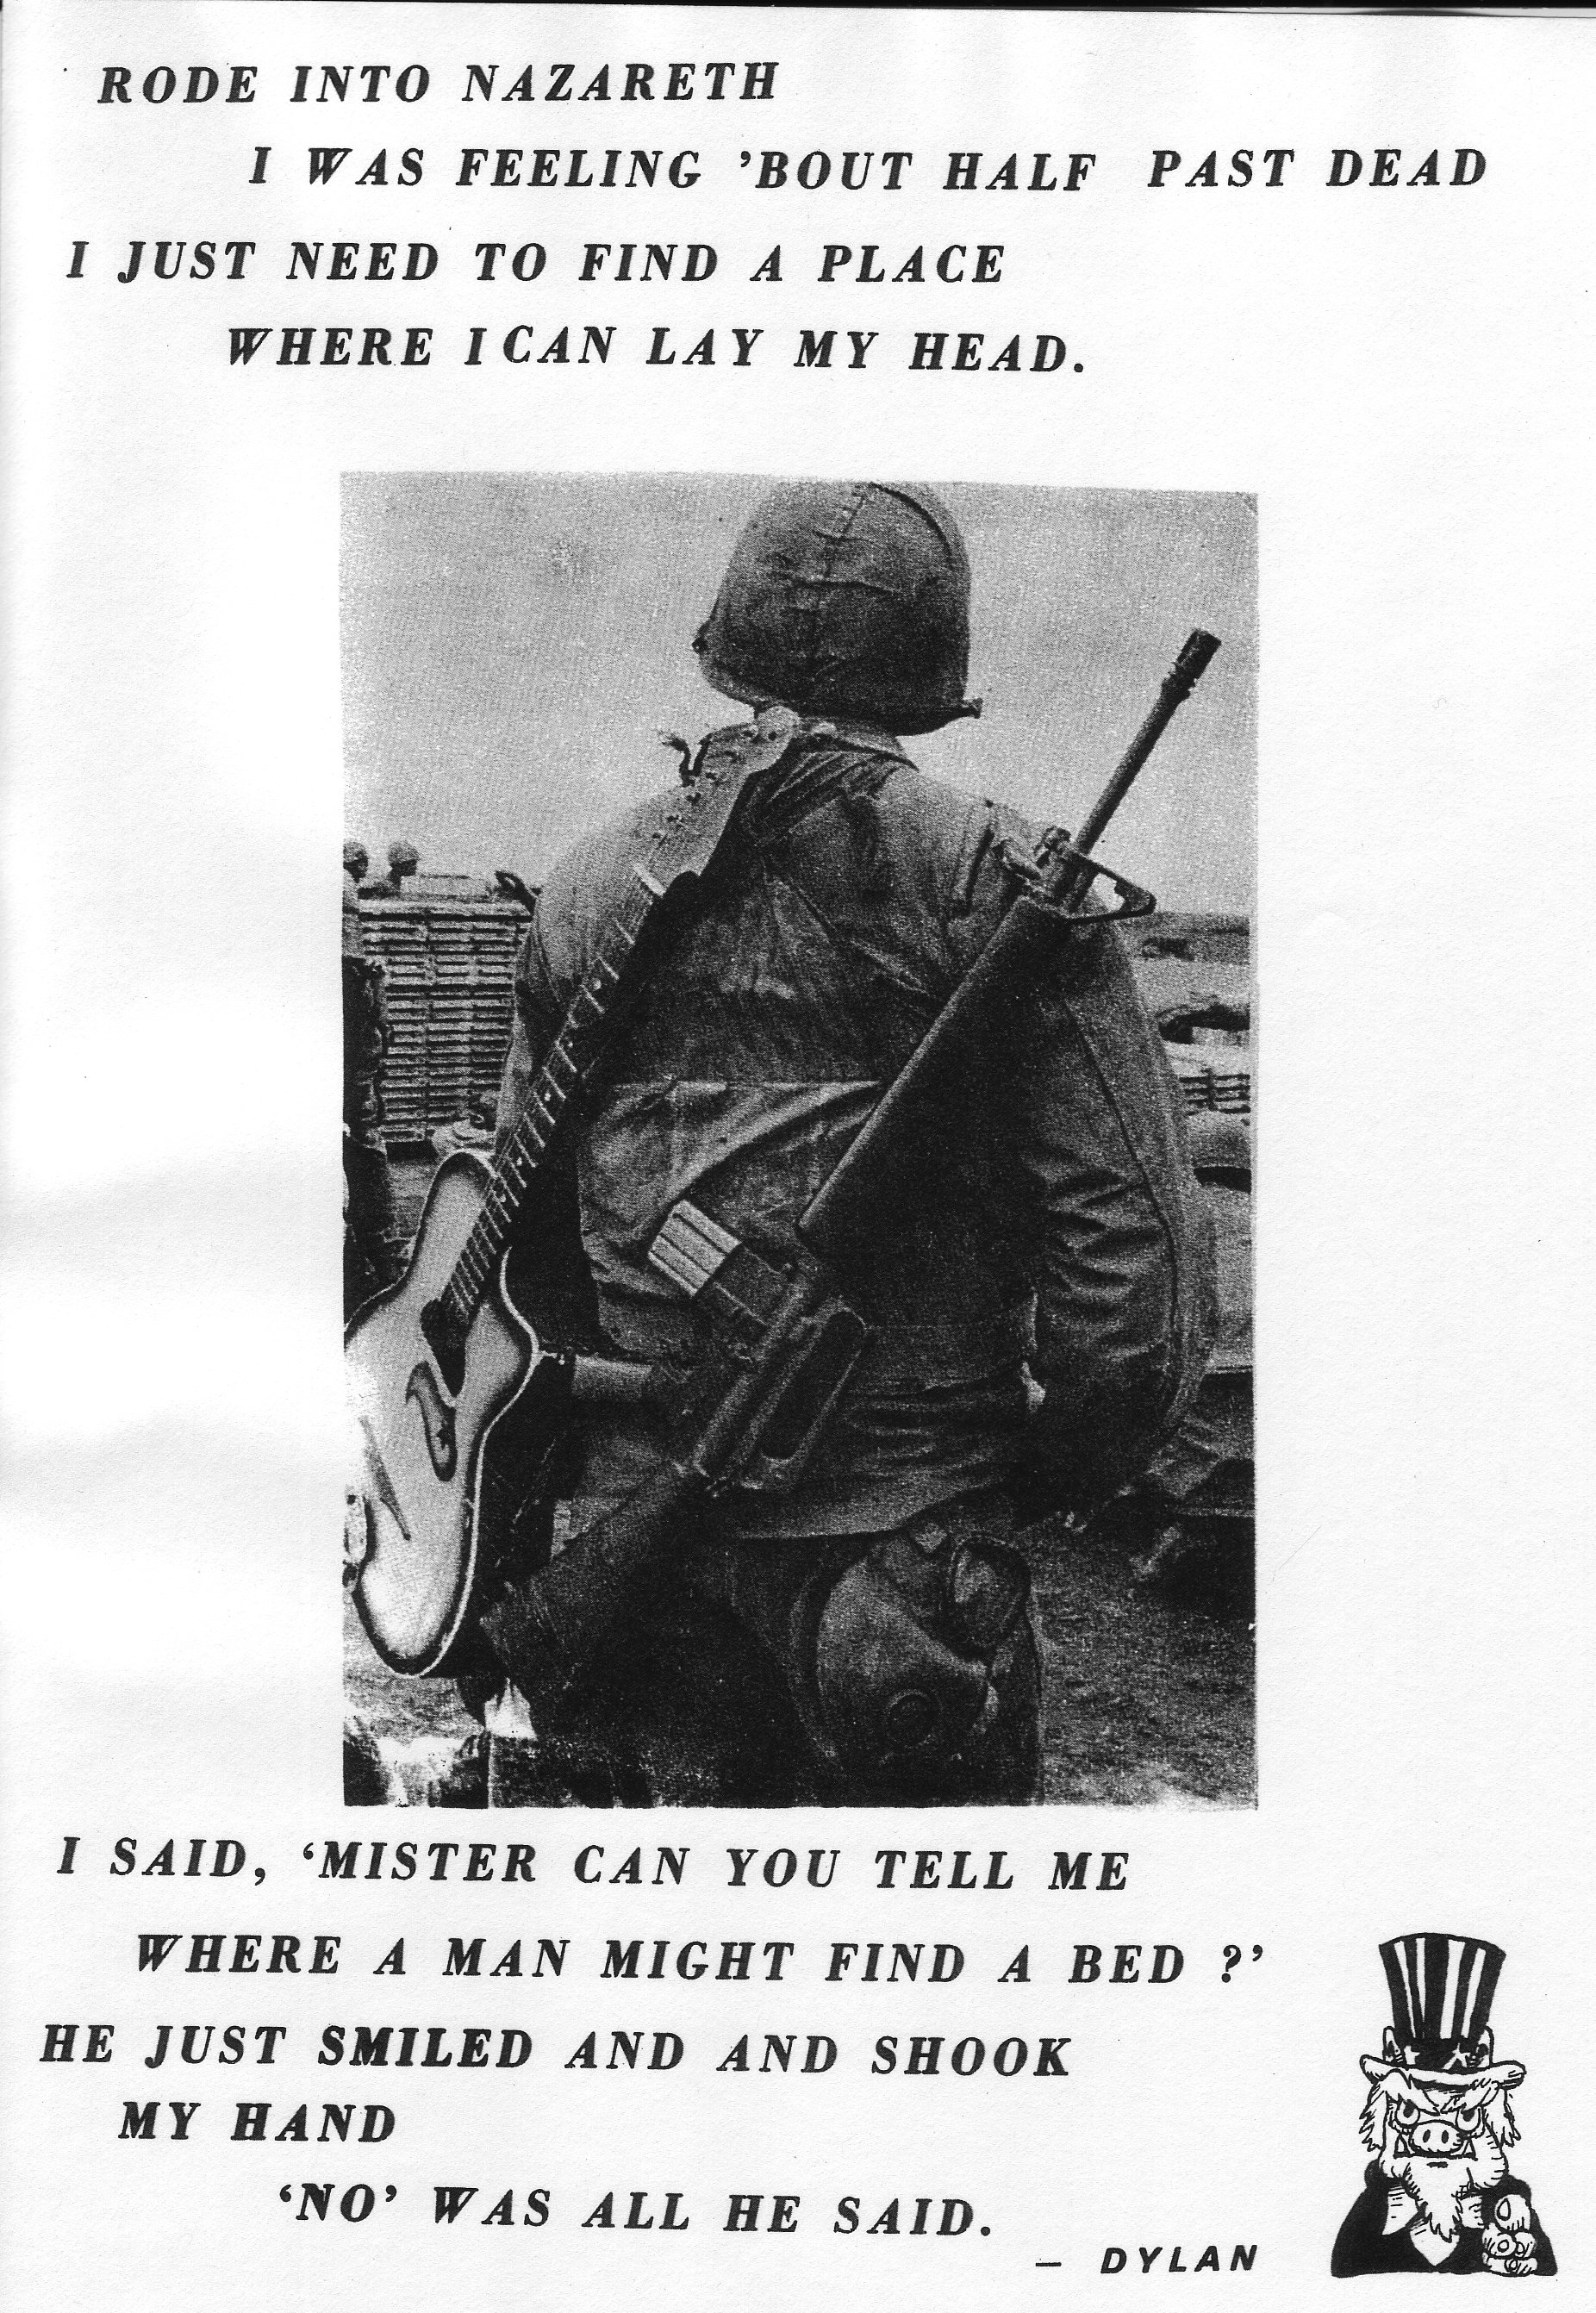 Anti-War Flyer - 1969